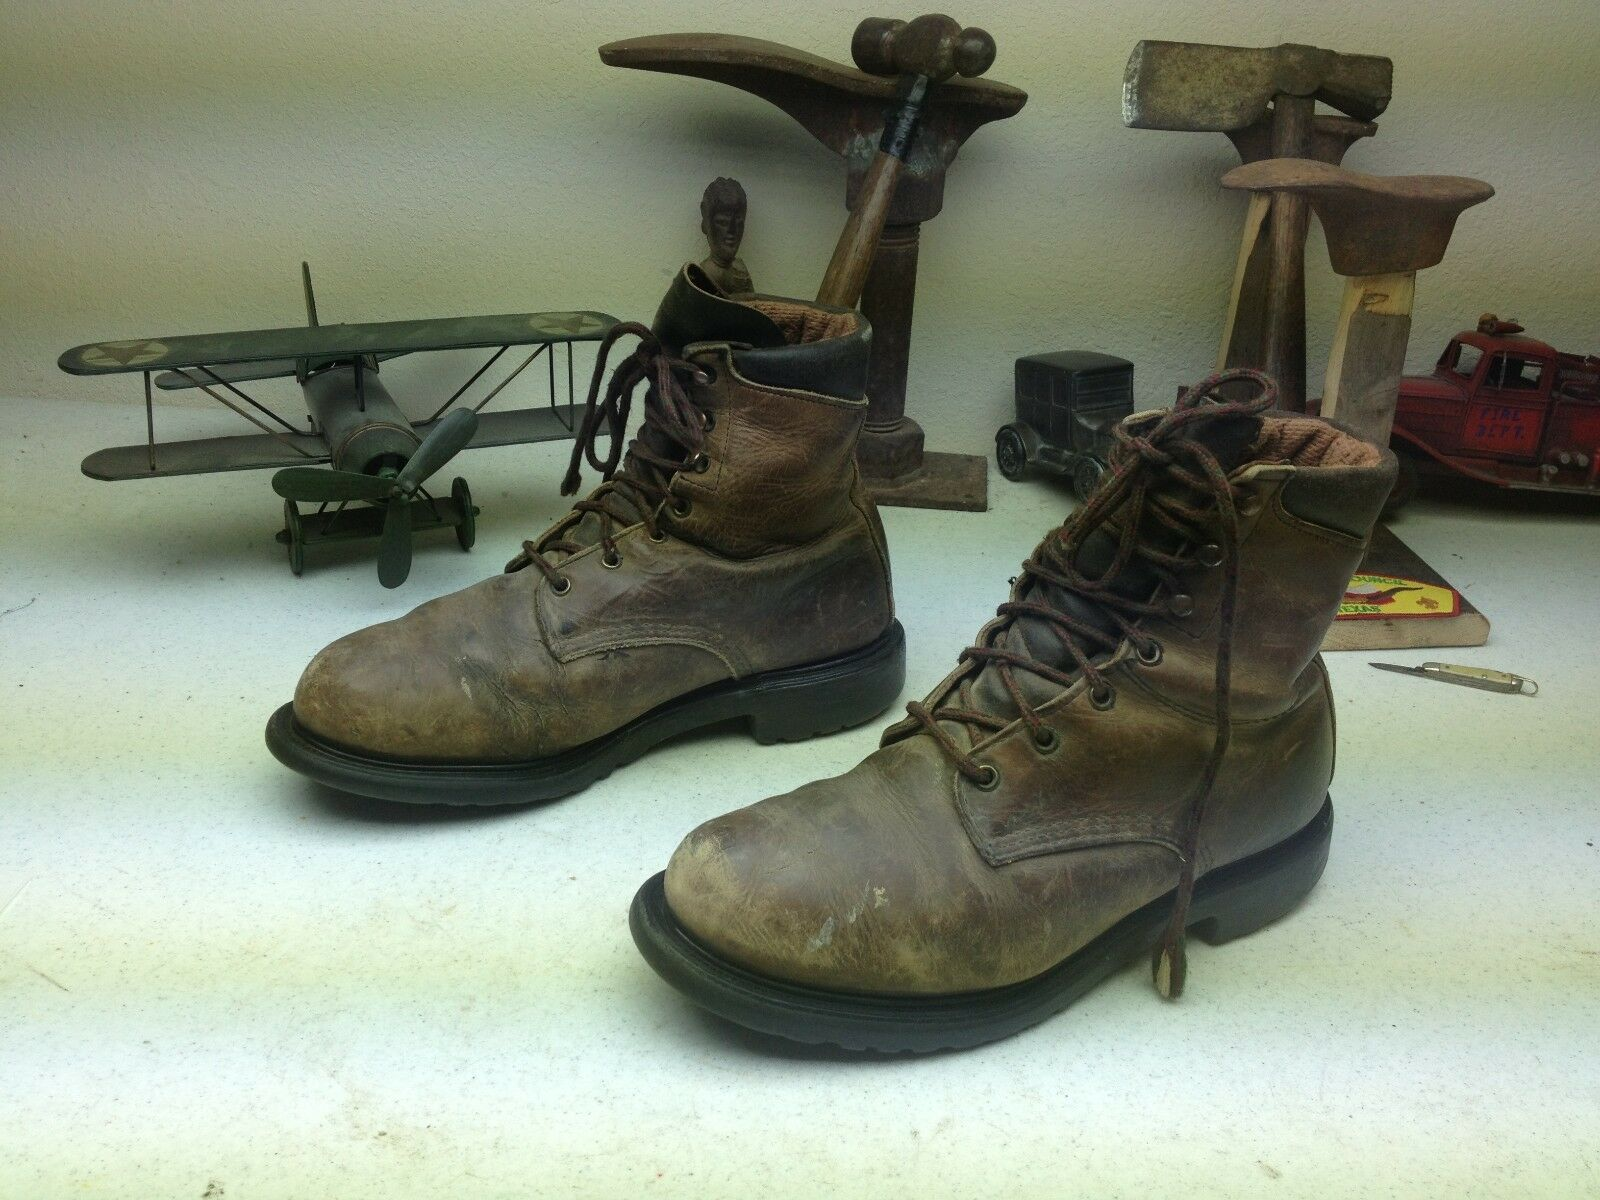 VINTAGE DISTRESSED RED WING MADE IN USA HUNTING WORK CHORE BOOTS SIZE 9 D